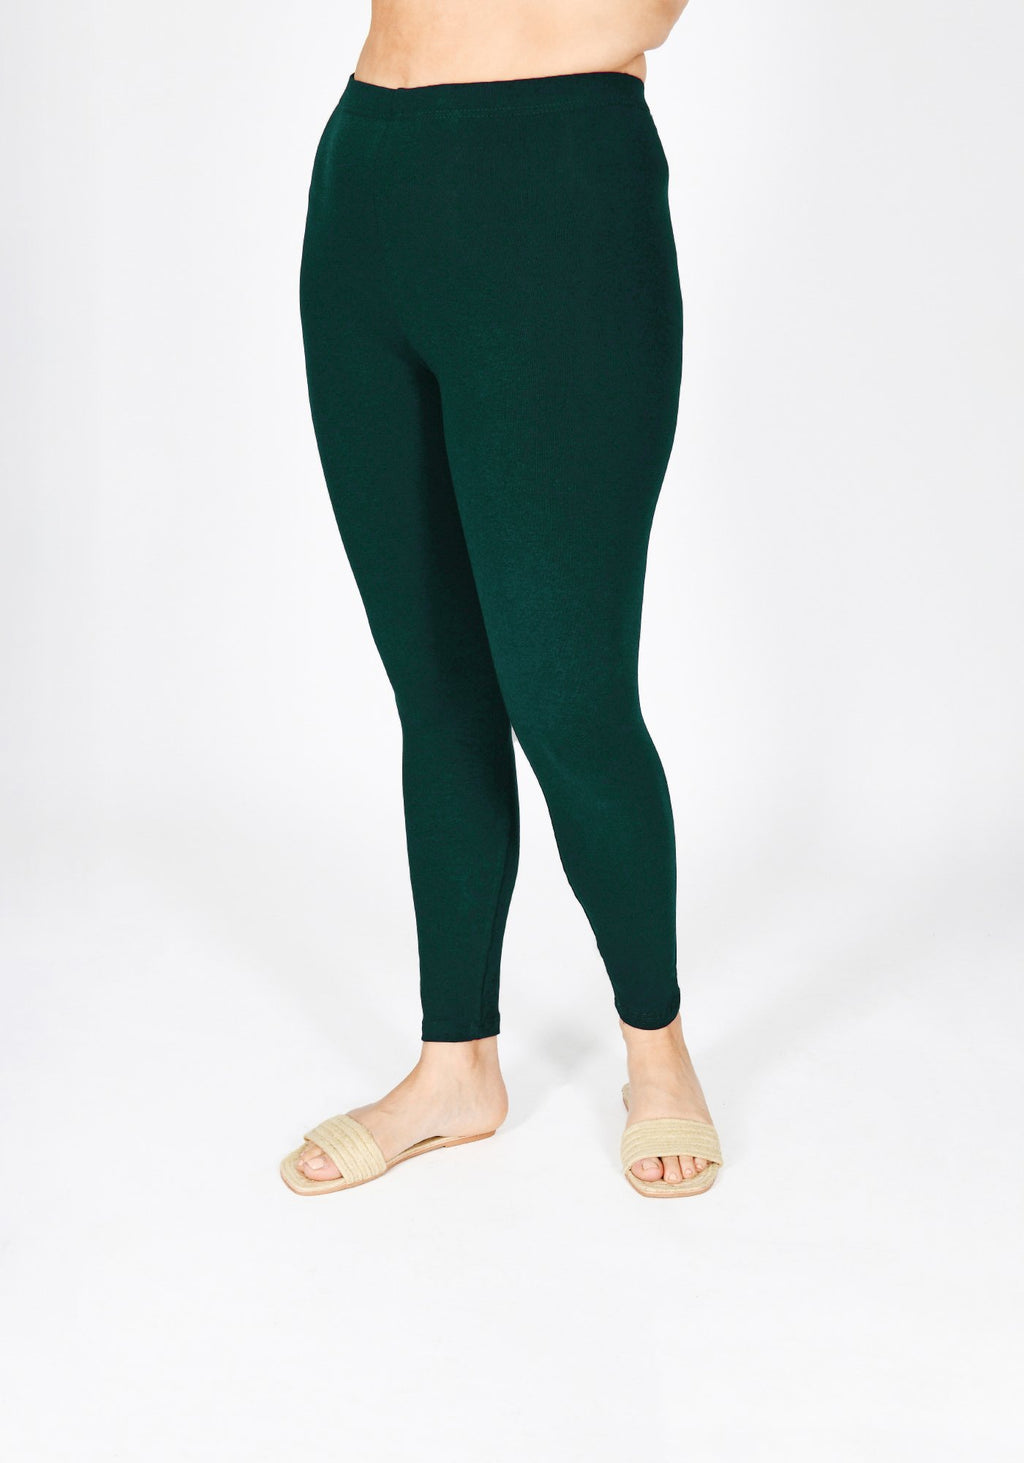 Classic Plus Size Forest Green Leggings